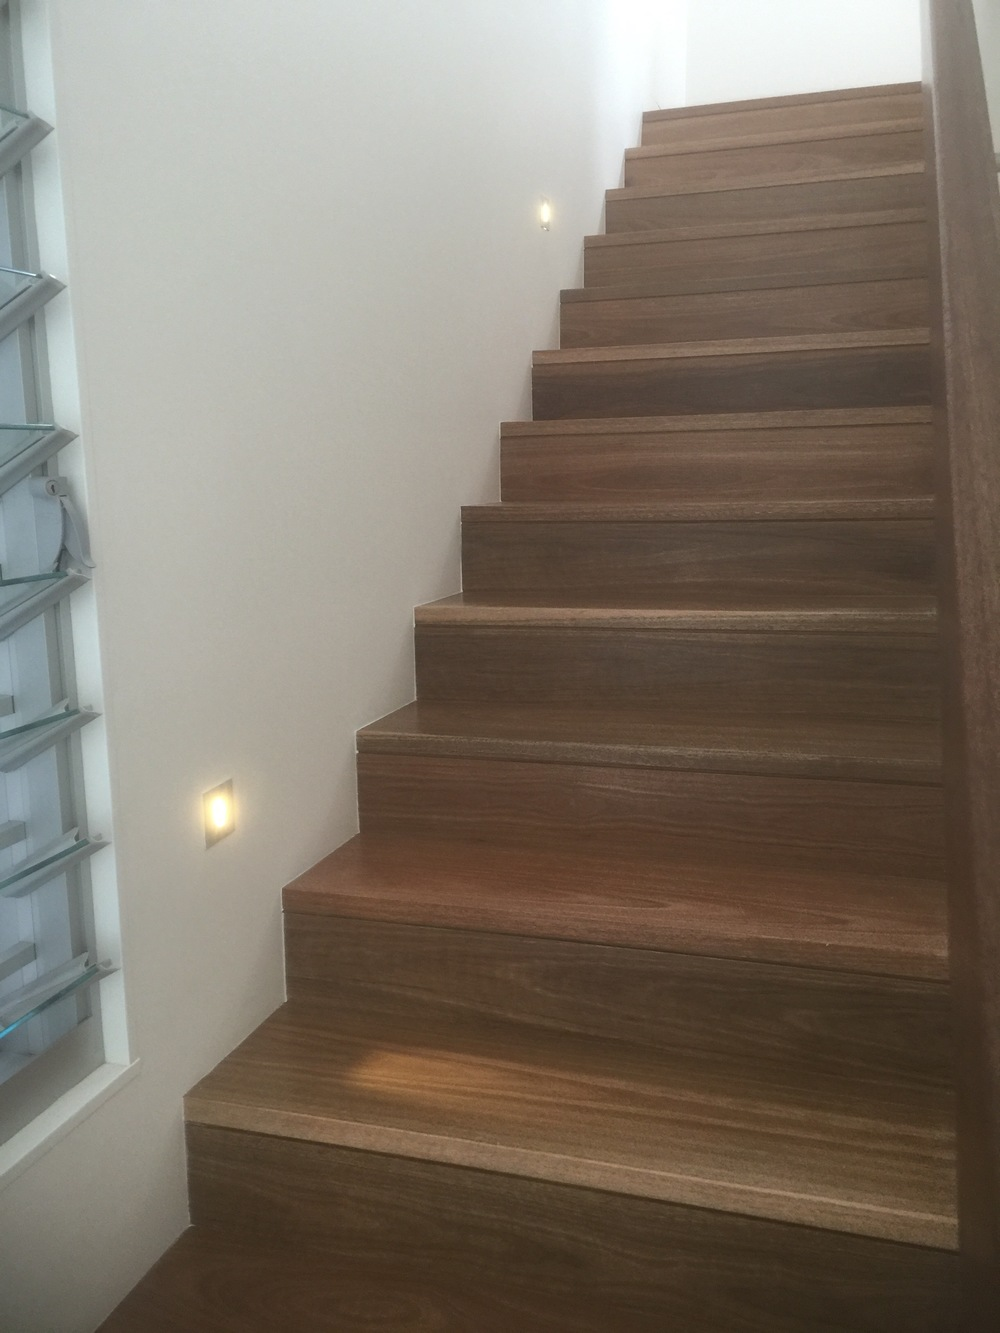 Stairwell lighting, tread lighting and path lighting